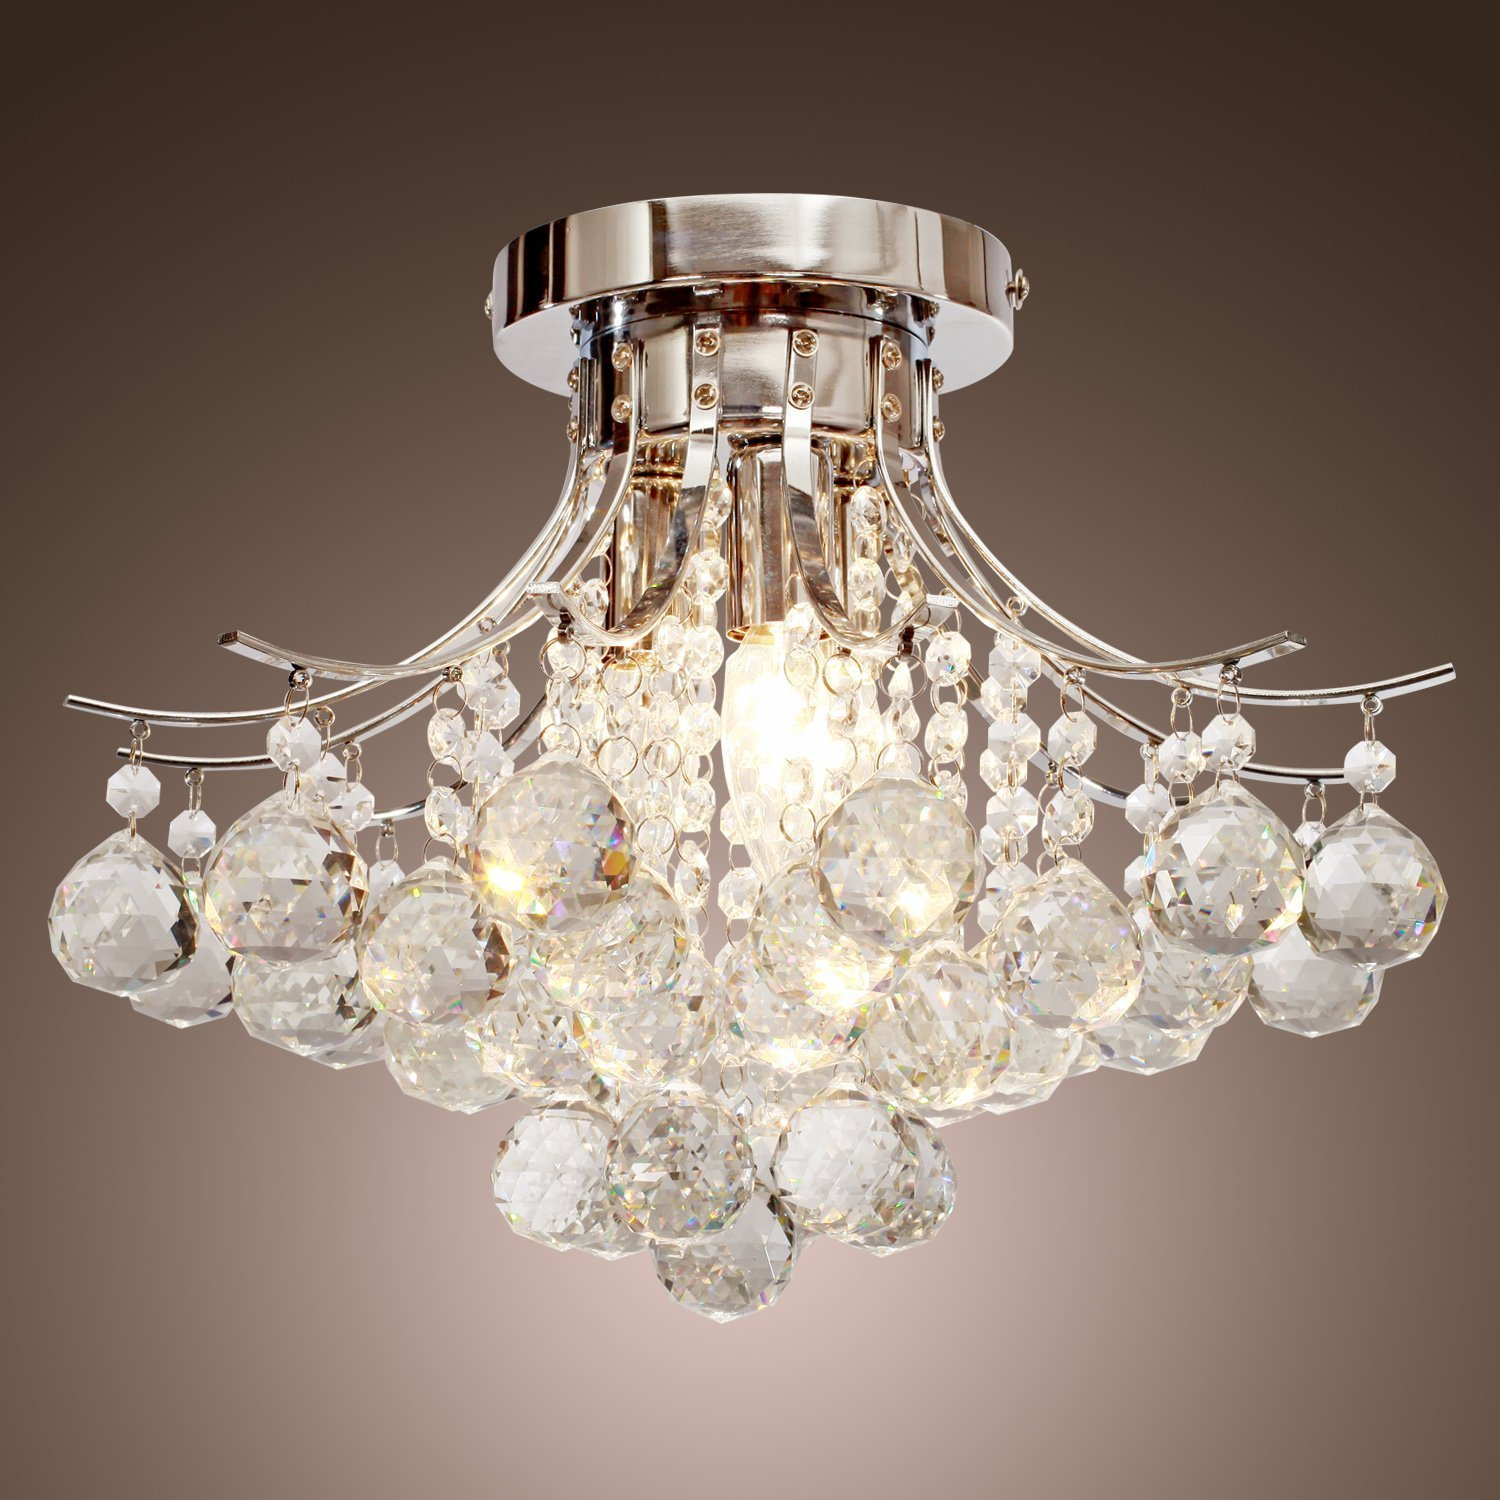 Chandeliers Amazon – Where Can I Buy a Chandelier